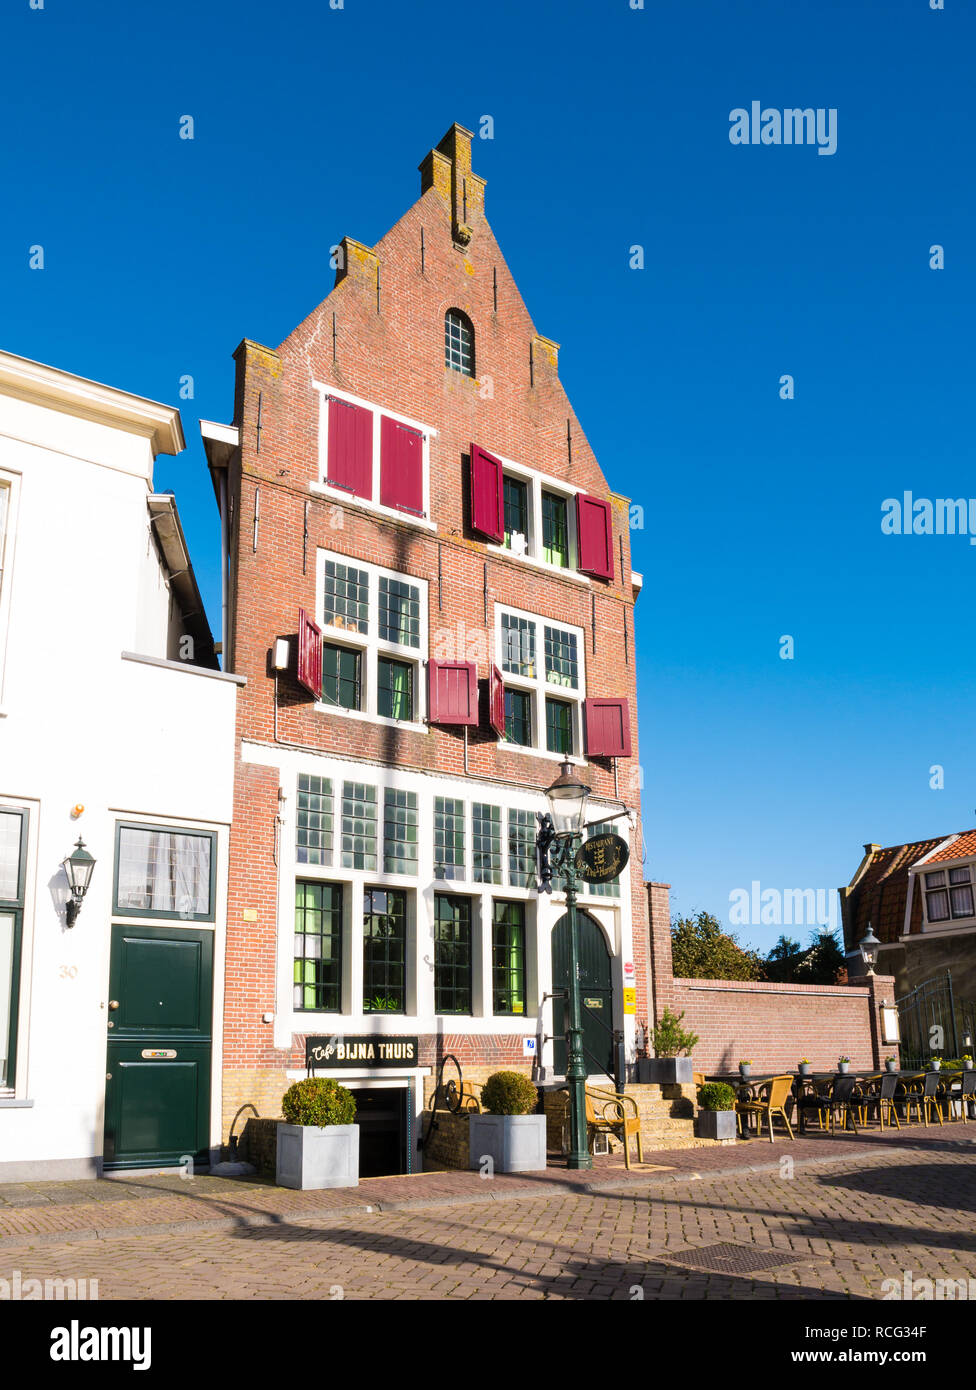 Facade of restaurant in historic warehouse in old town of Enkhuizen, Noord-Holland, Netherlands Stock Photo